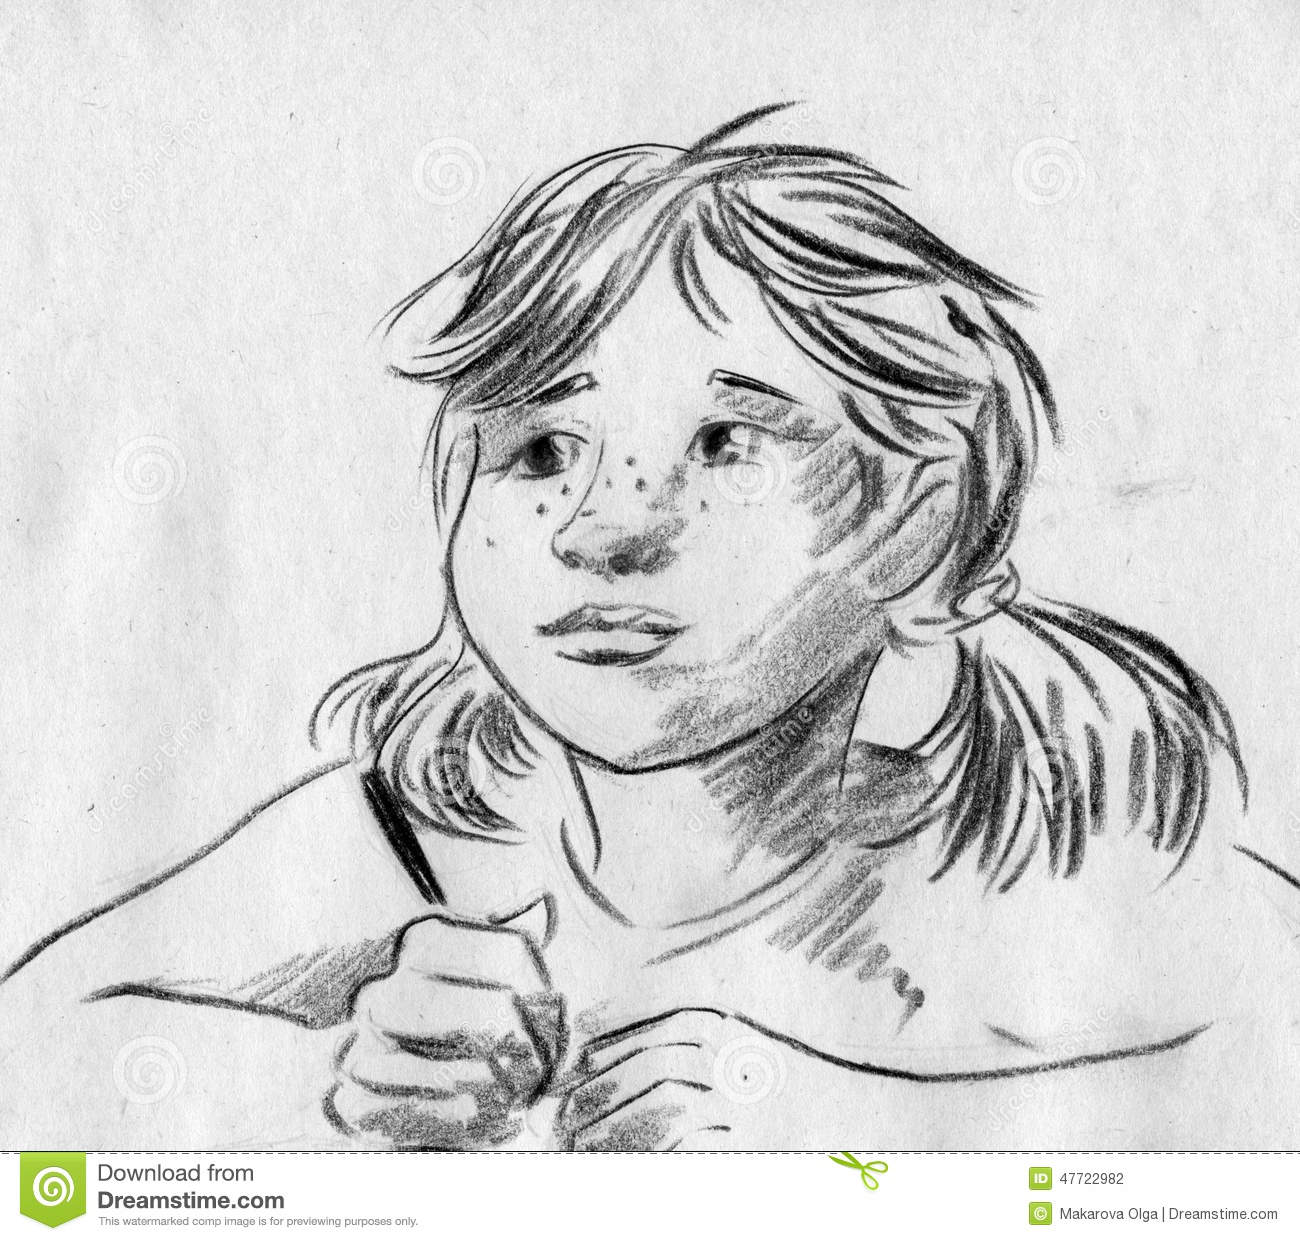 Girl With Pigtails Sketch Stock Illustration. Image Of